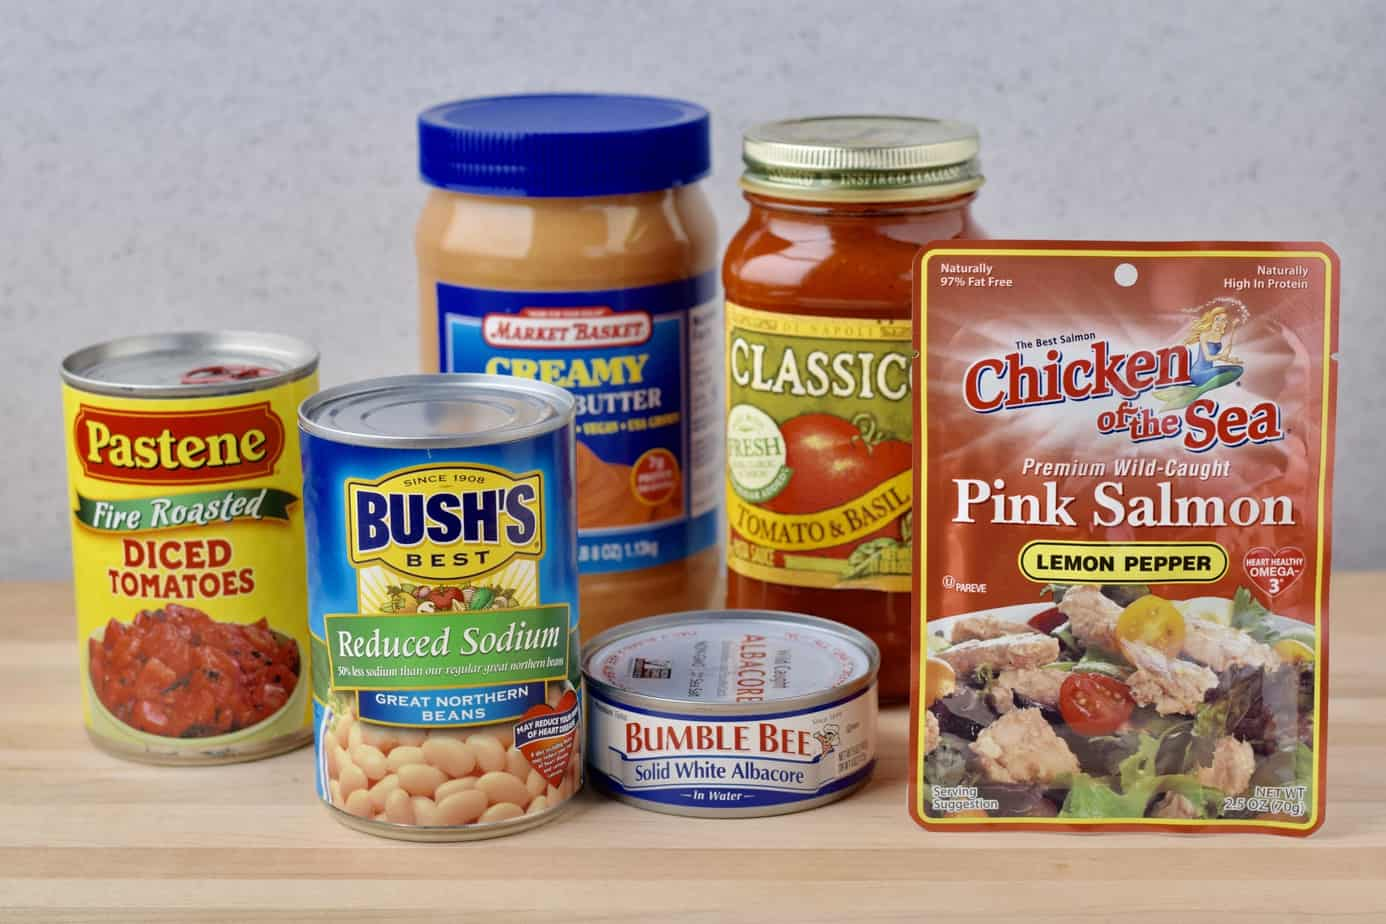 canned tomatoes, beans, tuna fish, peanut butter, tomato sauce, pouched salmon